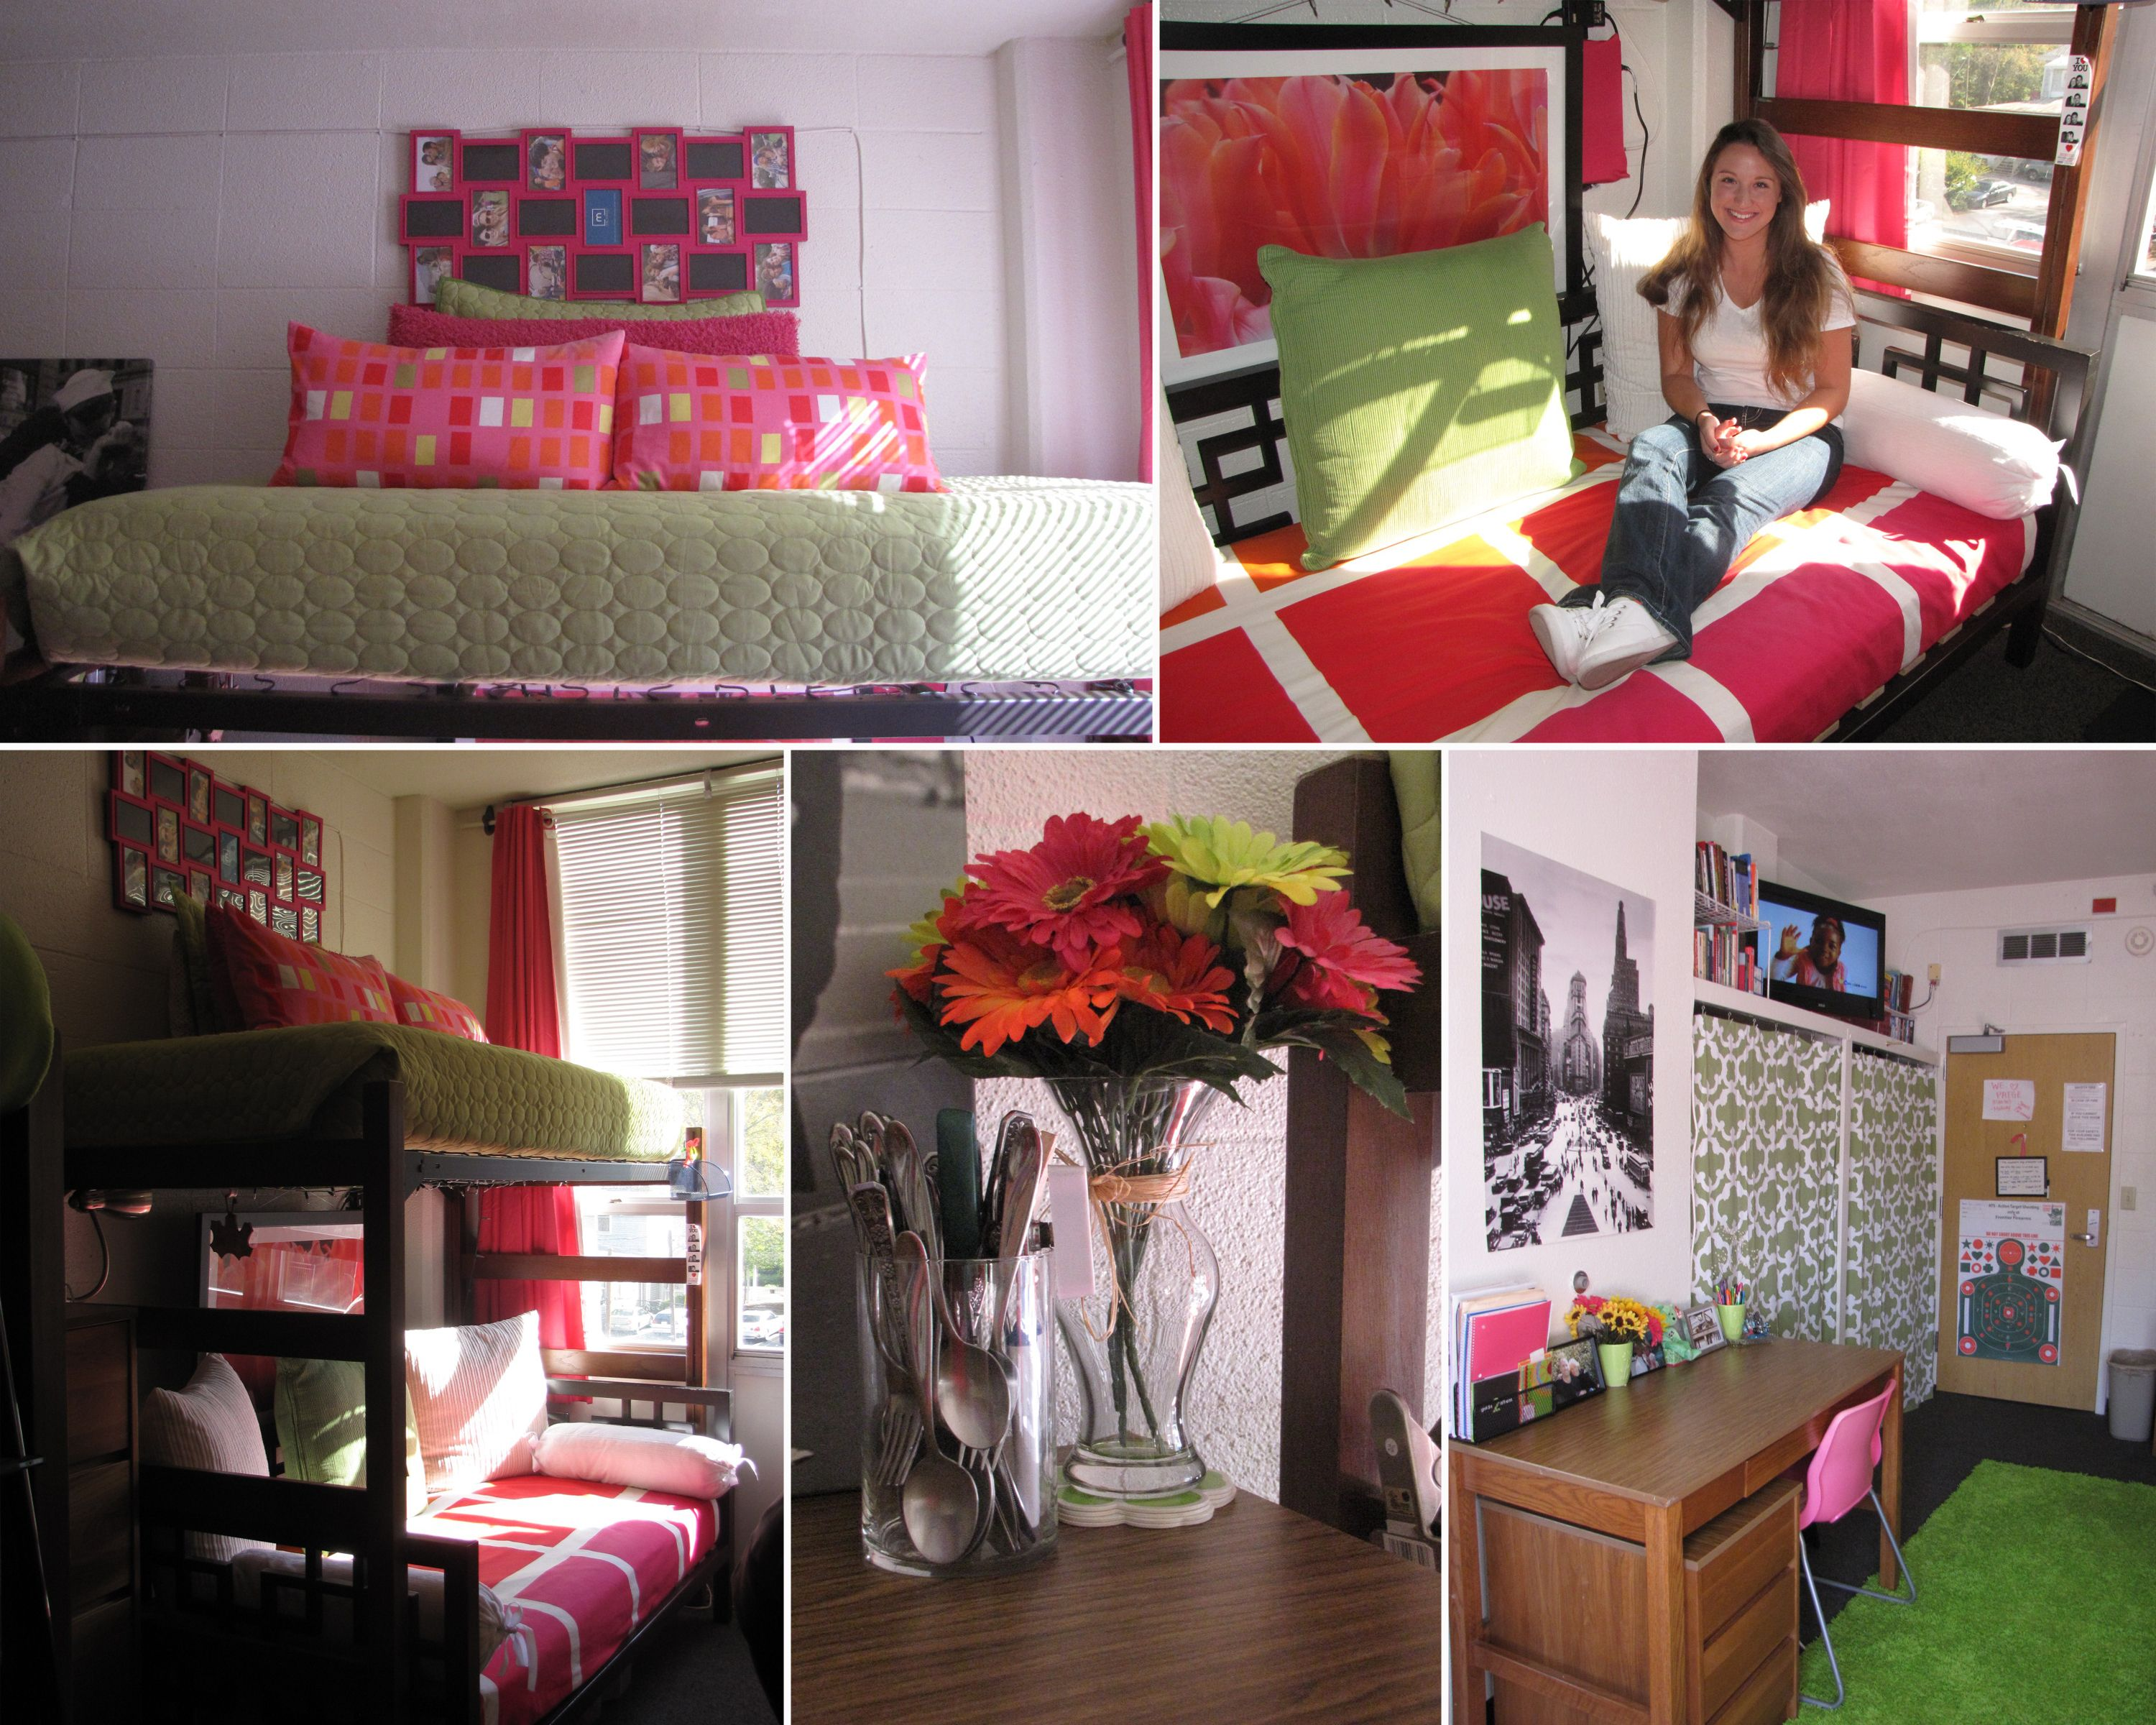 A great window view inspired flowers and bright hues of - Interior design colleges in georgia ...